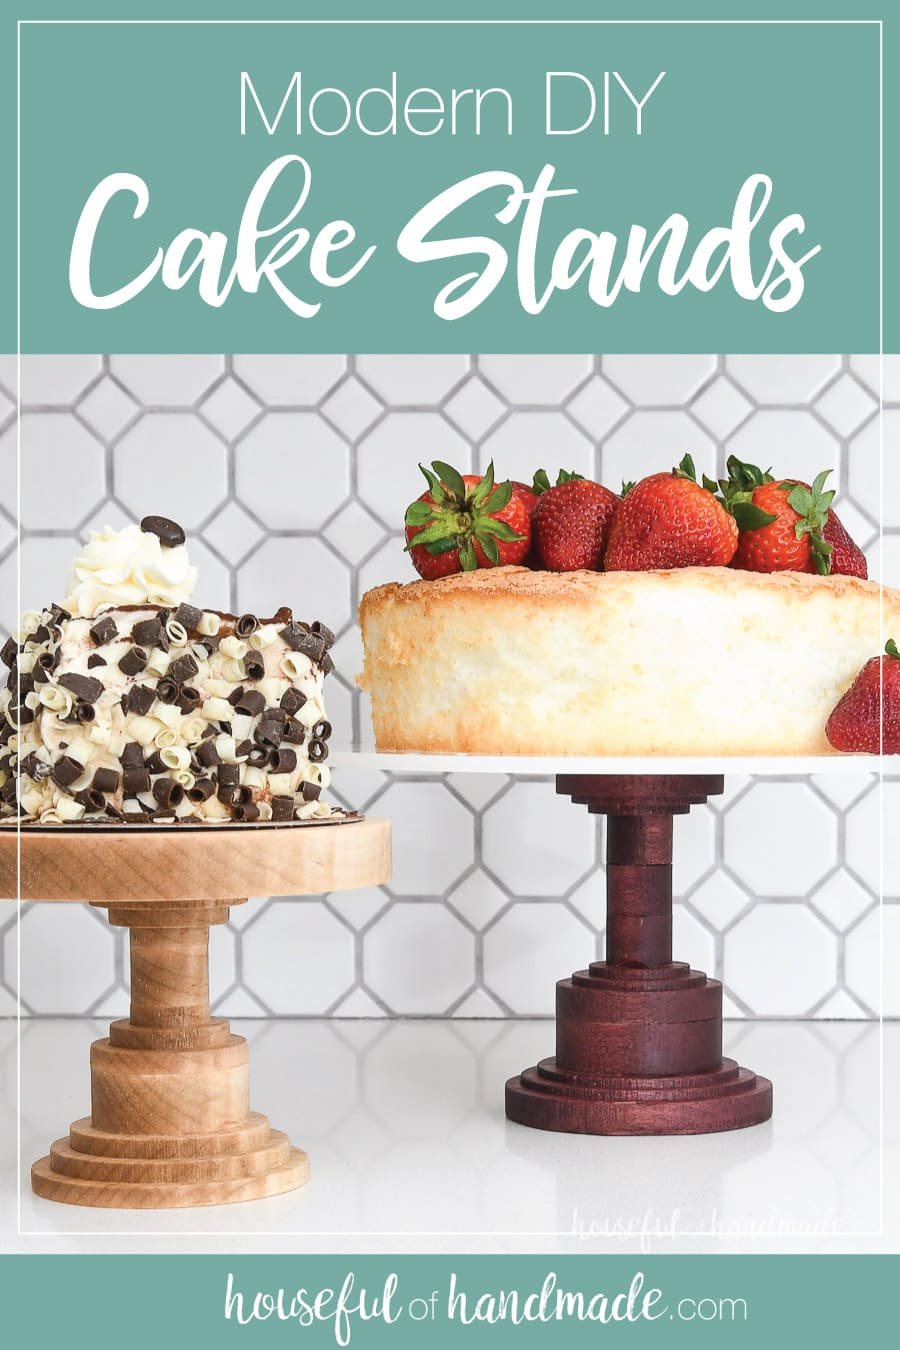 Two modern DIY cake stands made from hardwood with words above it.